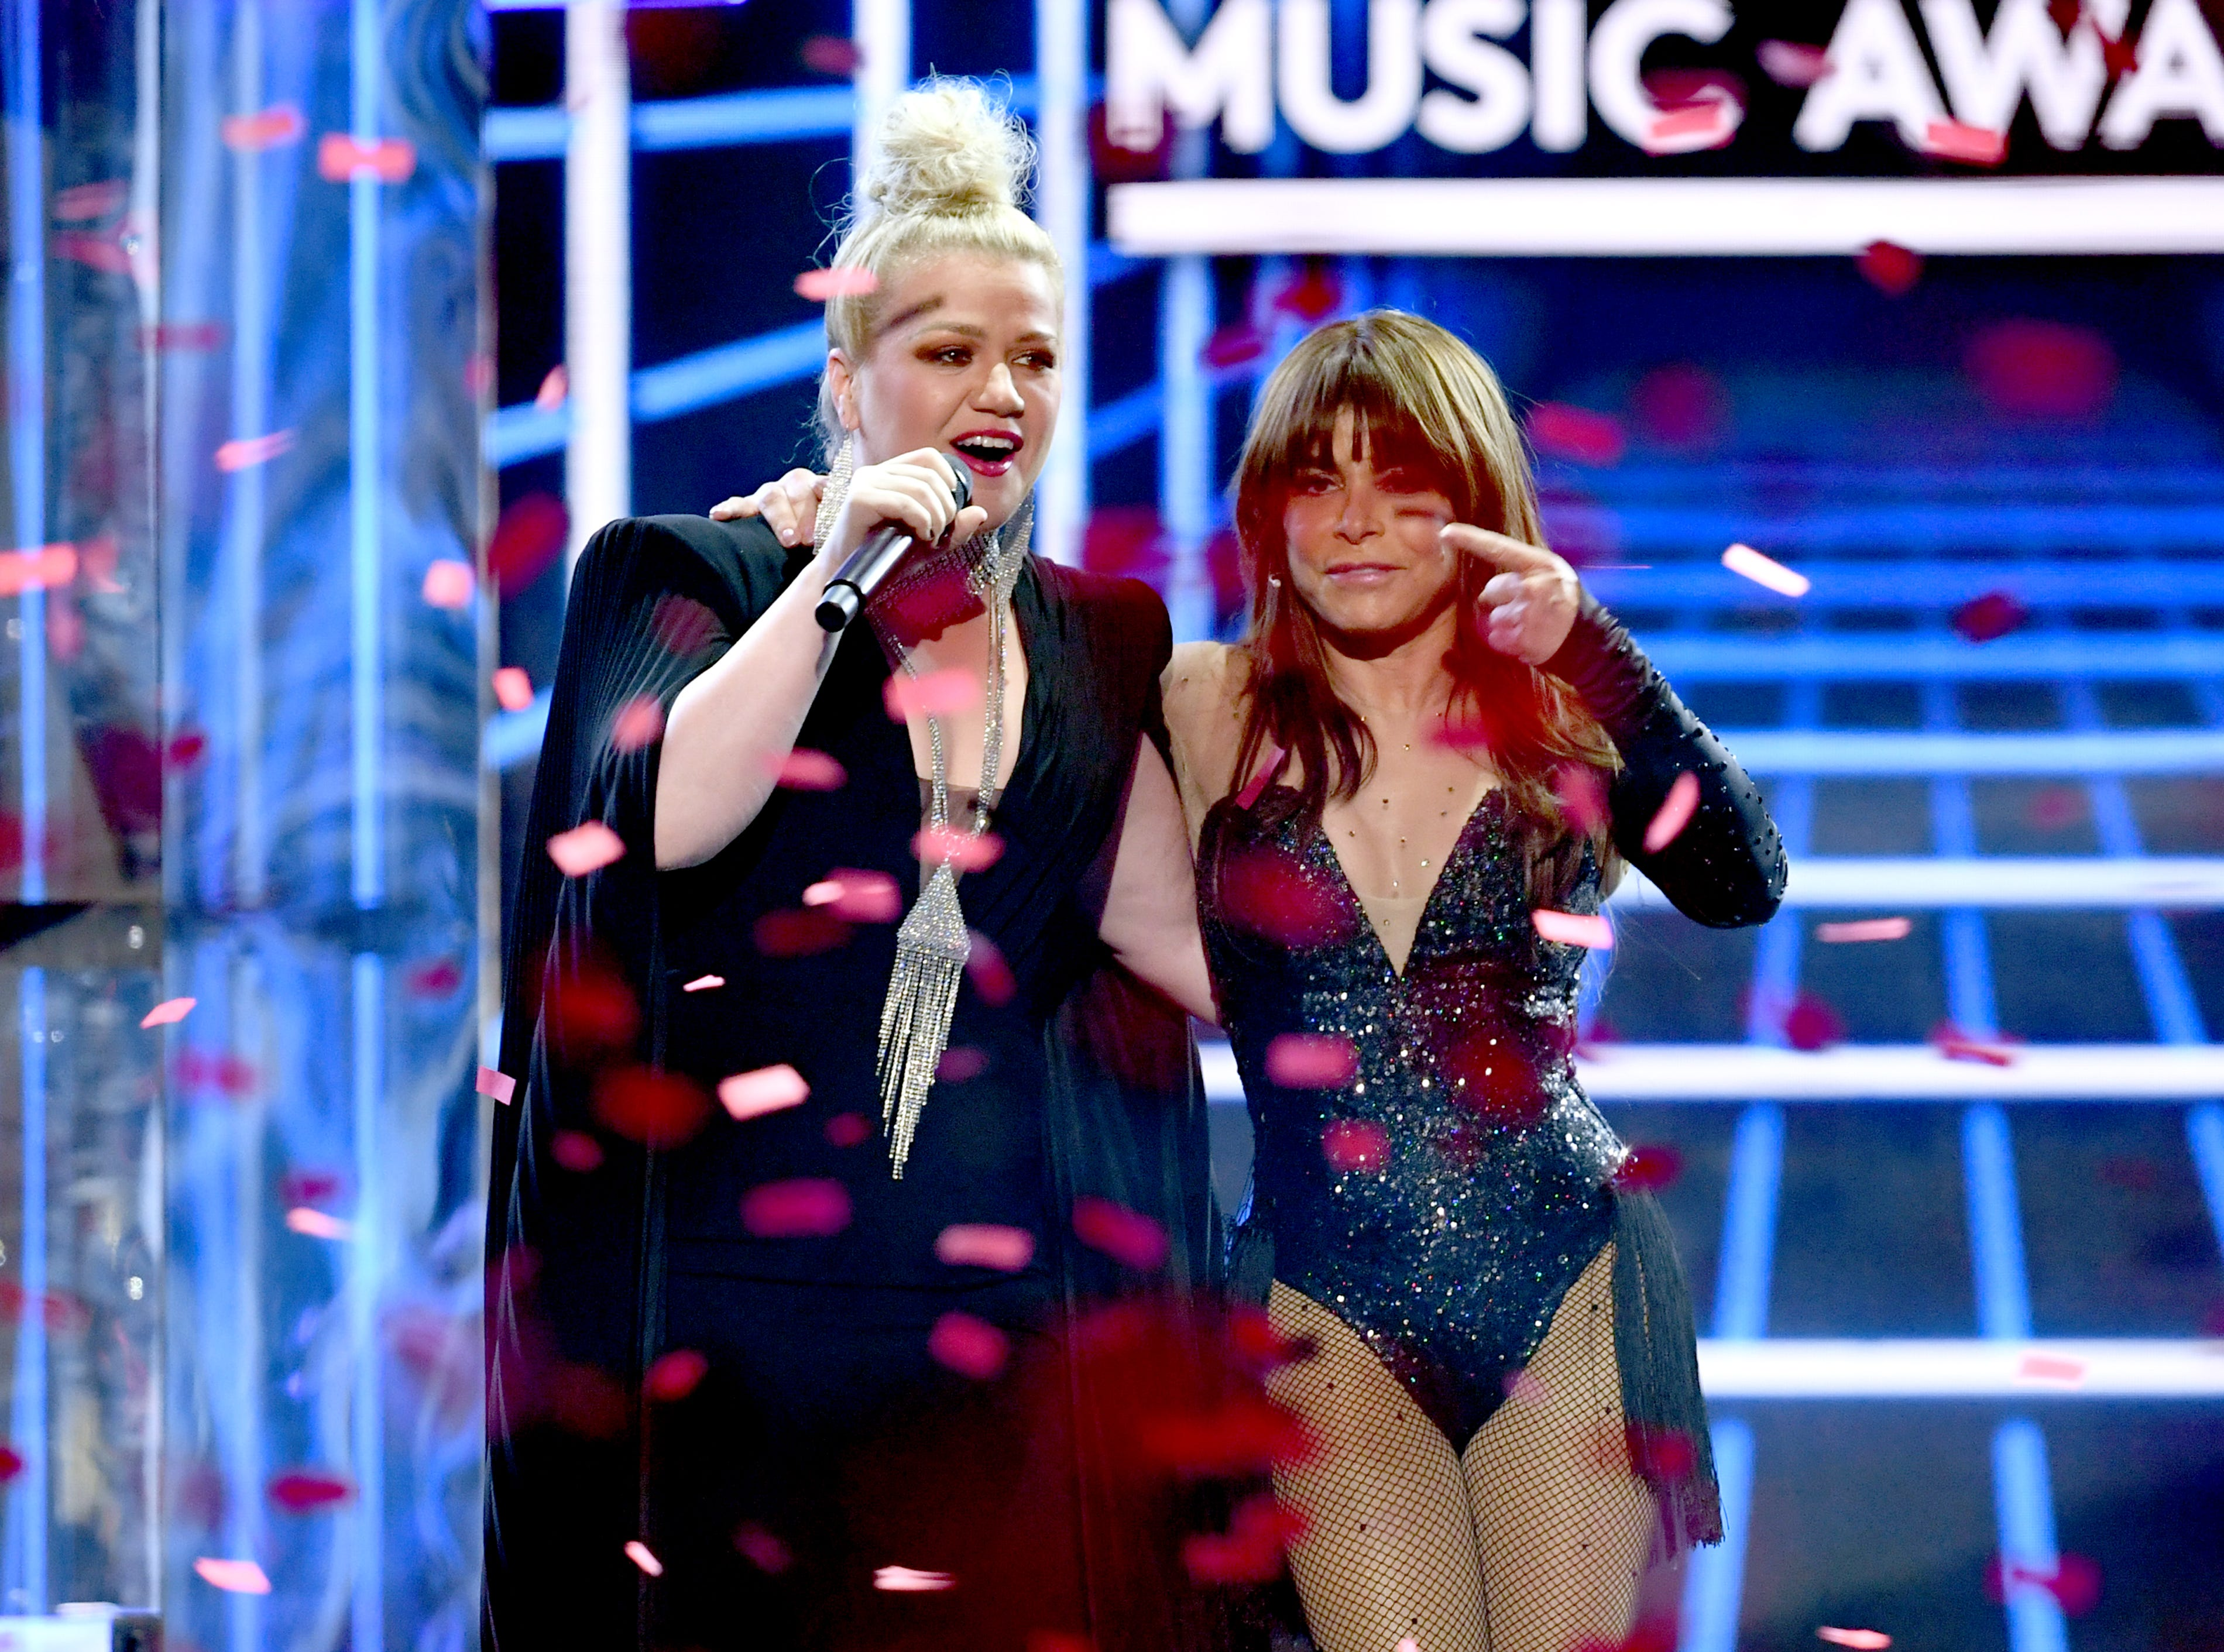 (L-R) Host Kelly Clarkson and Paula Abdul speak onstage during the 2019 Billboard Music Awards at MGM Grand Garden Arena on May 01, 2019 in Las Vegas, Nevada.